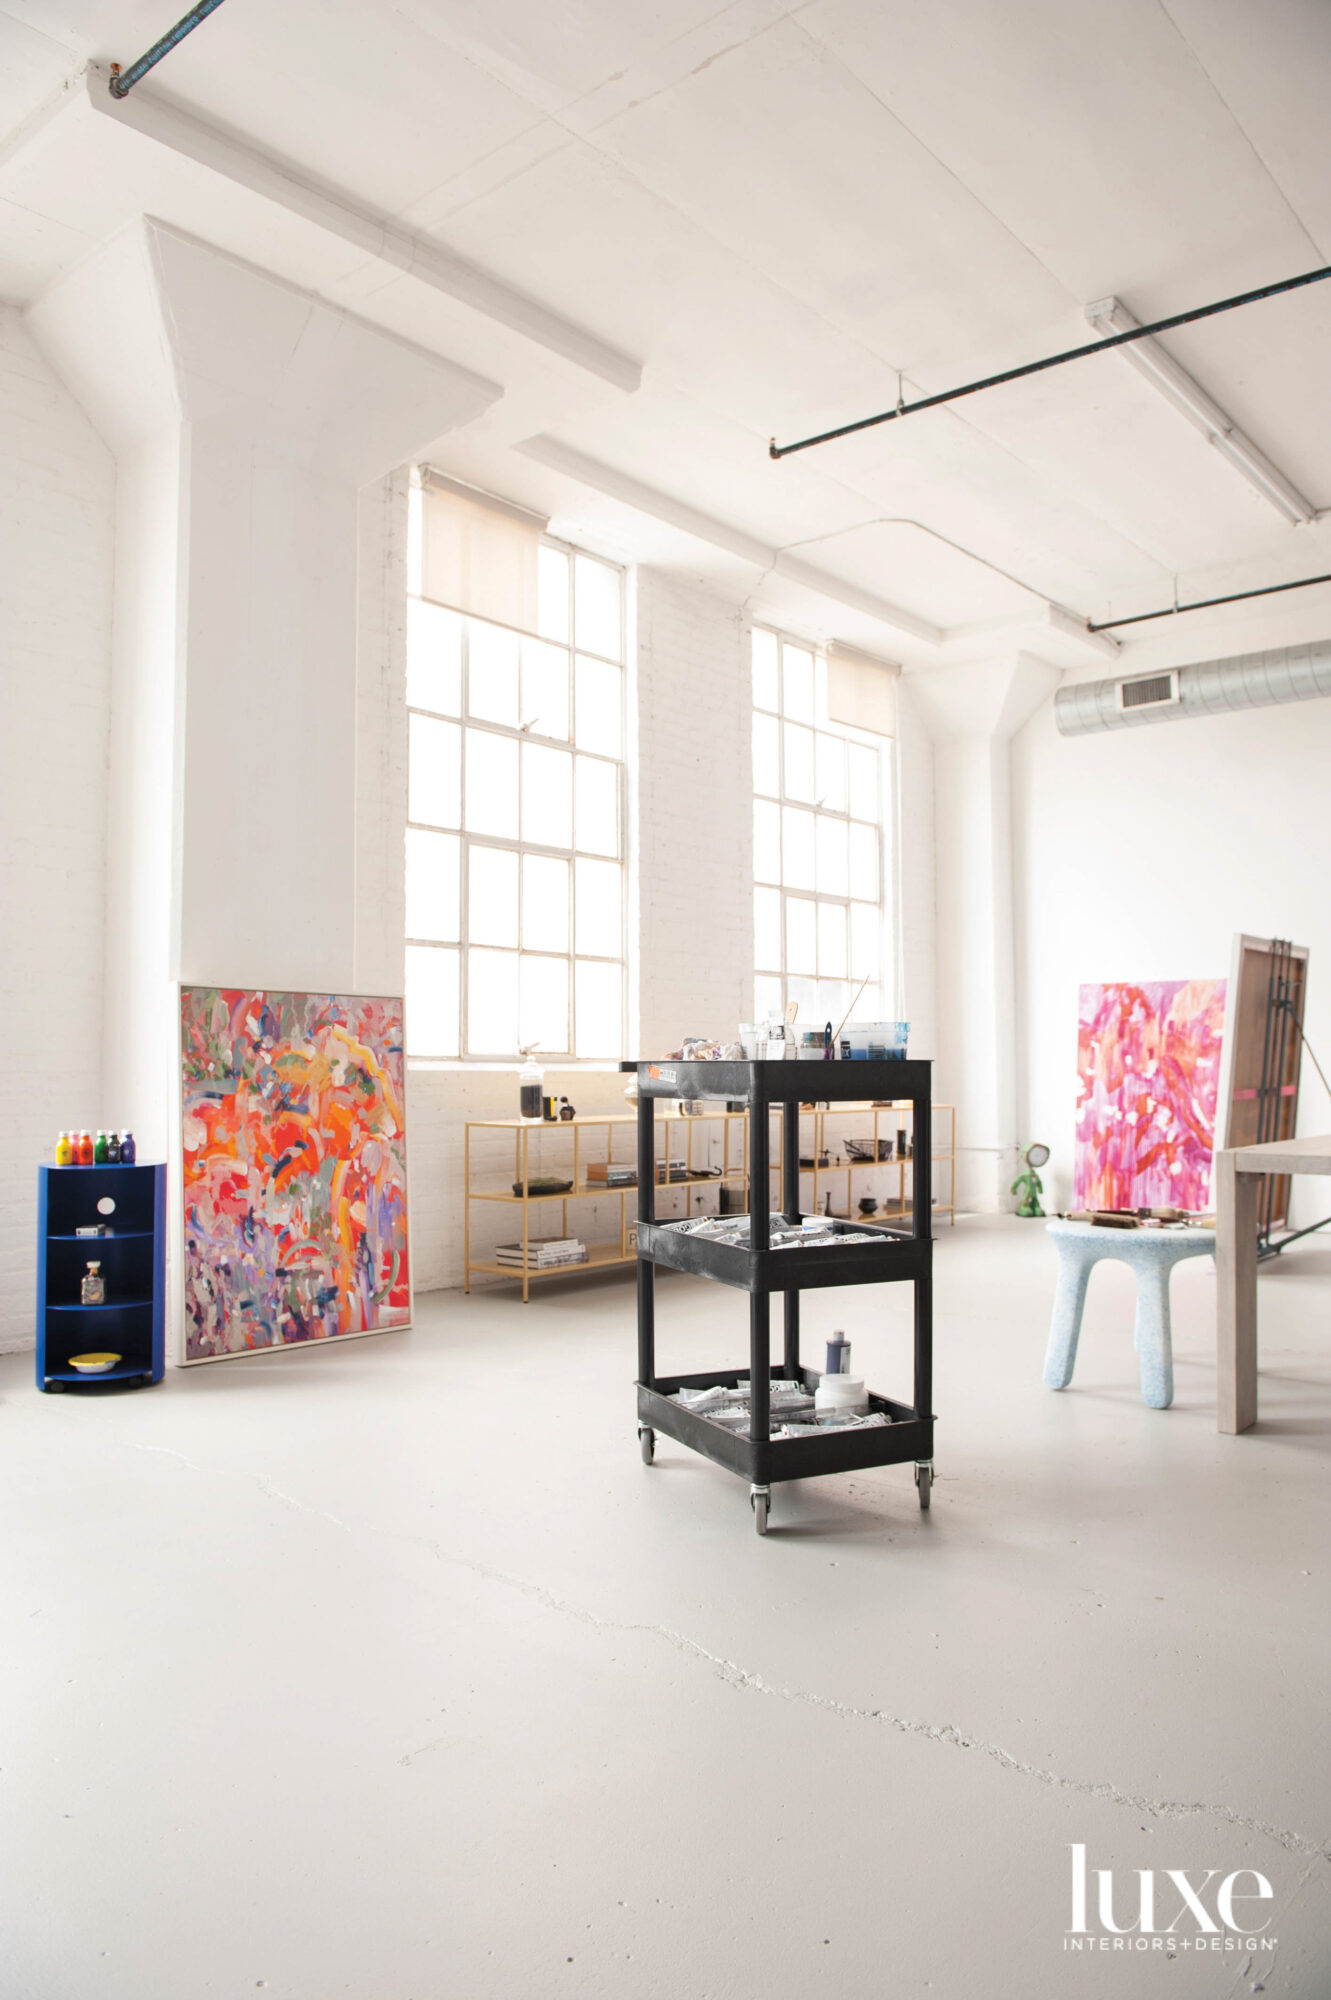 A large white studio with large windows and two colorful abstract paintings.